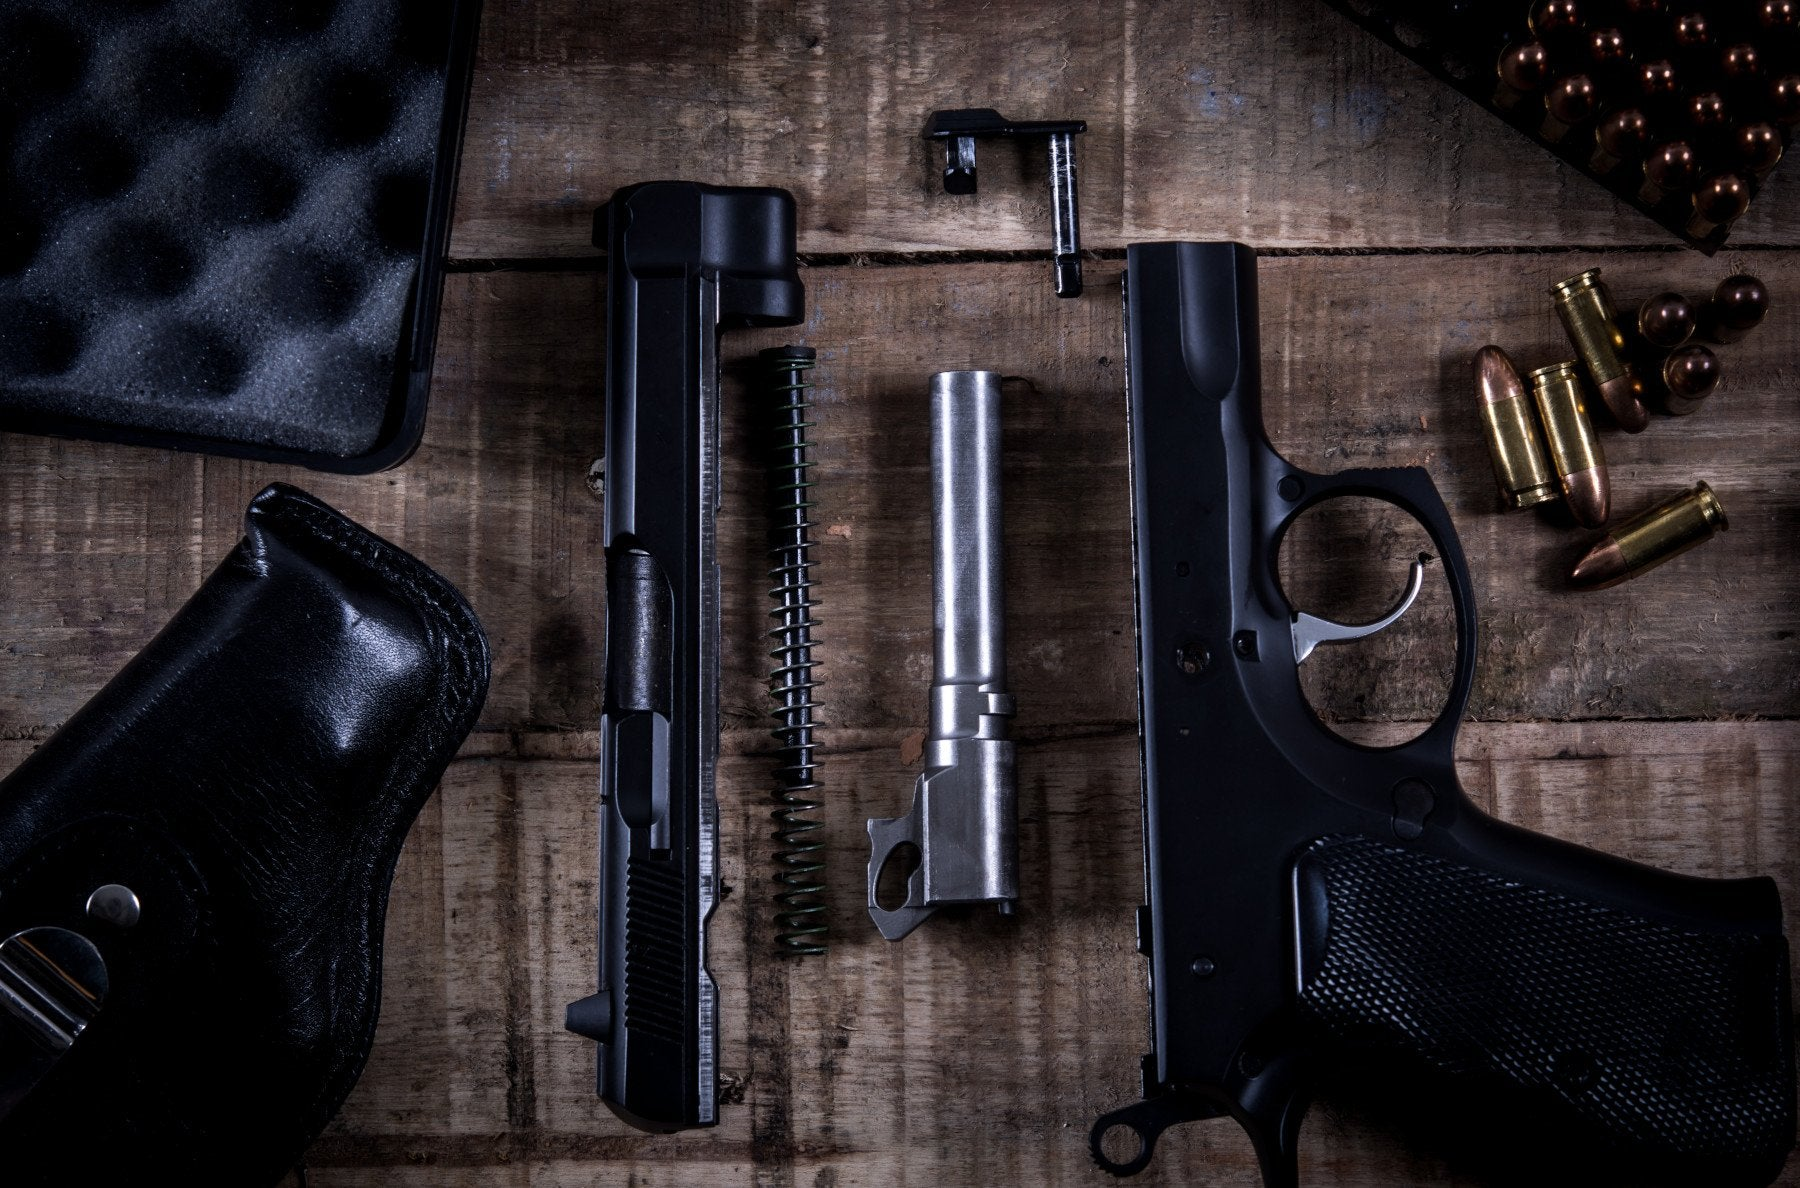 Gun taken apart on a table for cleaning